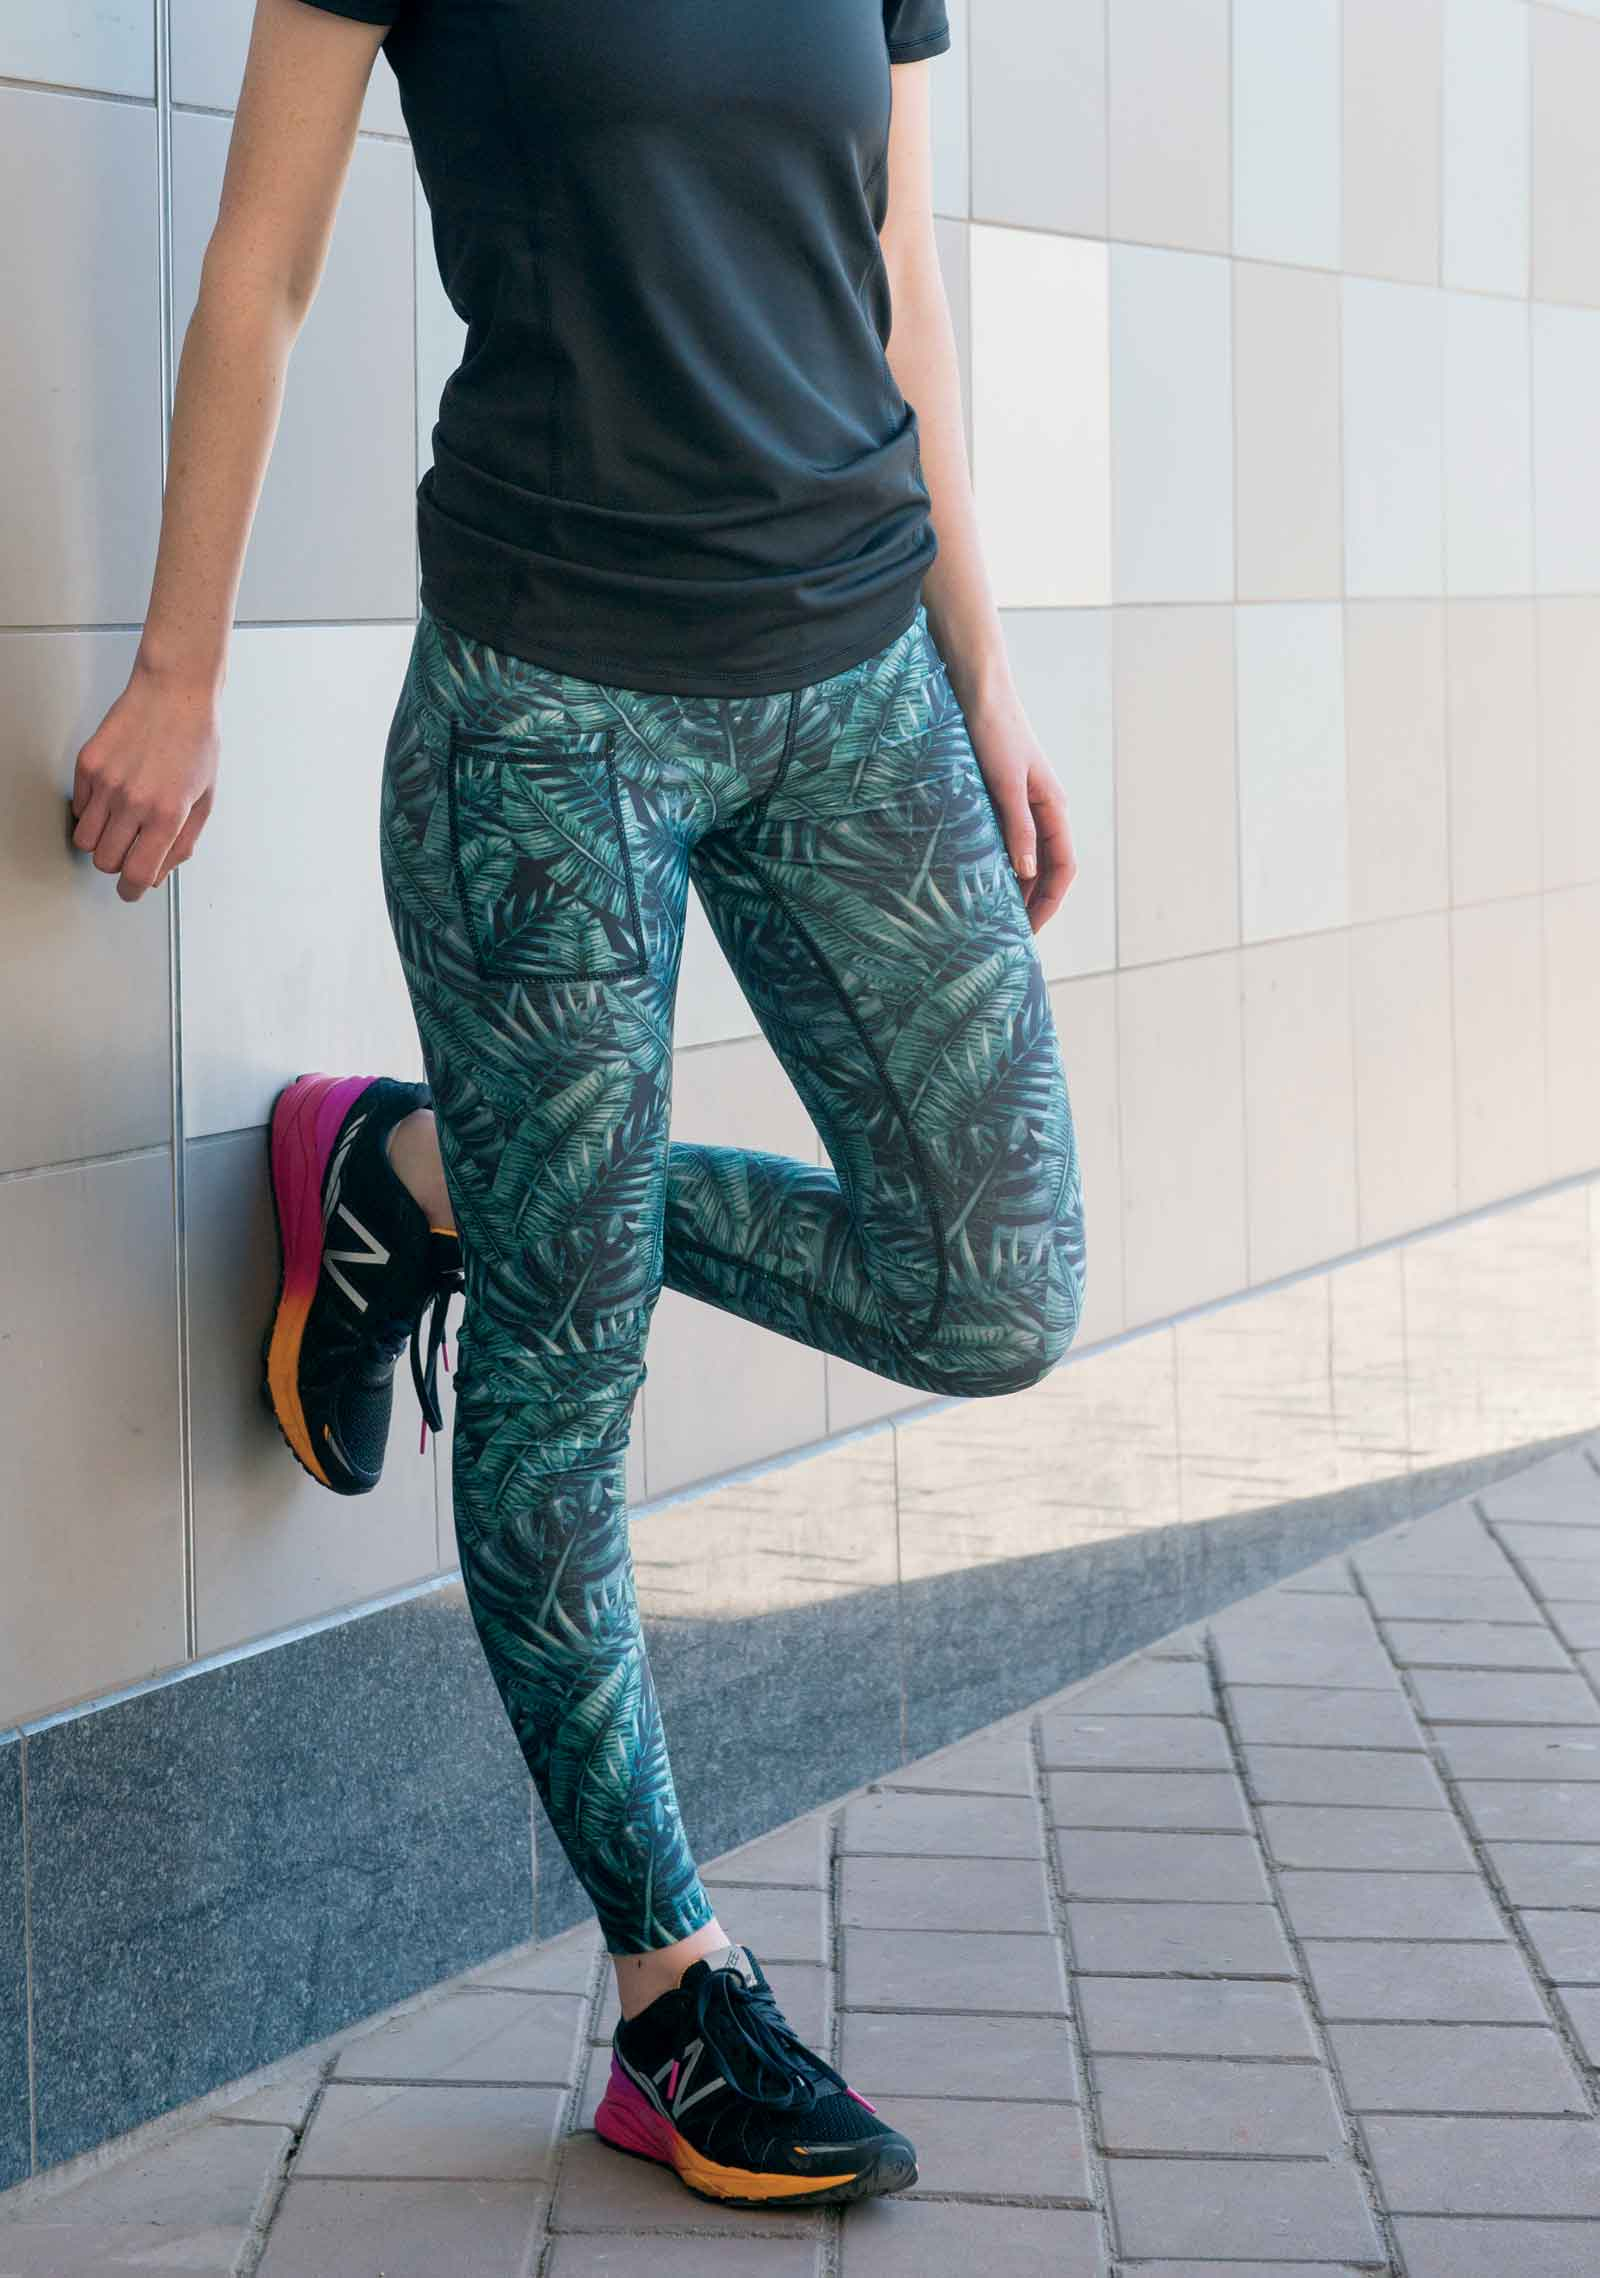 The 6 Biggest Active Wear Trends of 2017 - Rain Forest Leggings